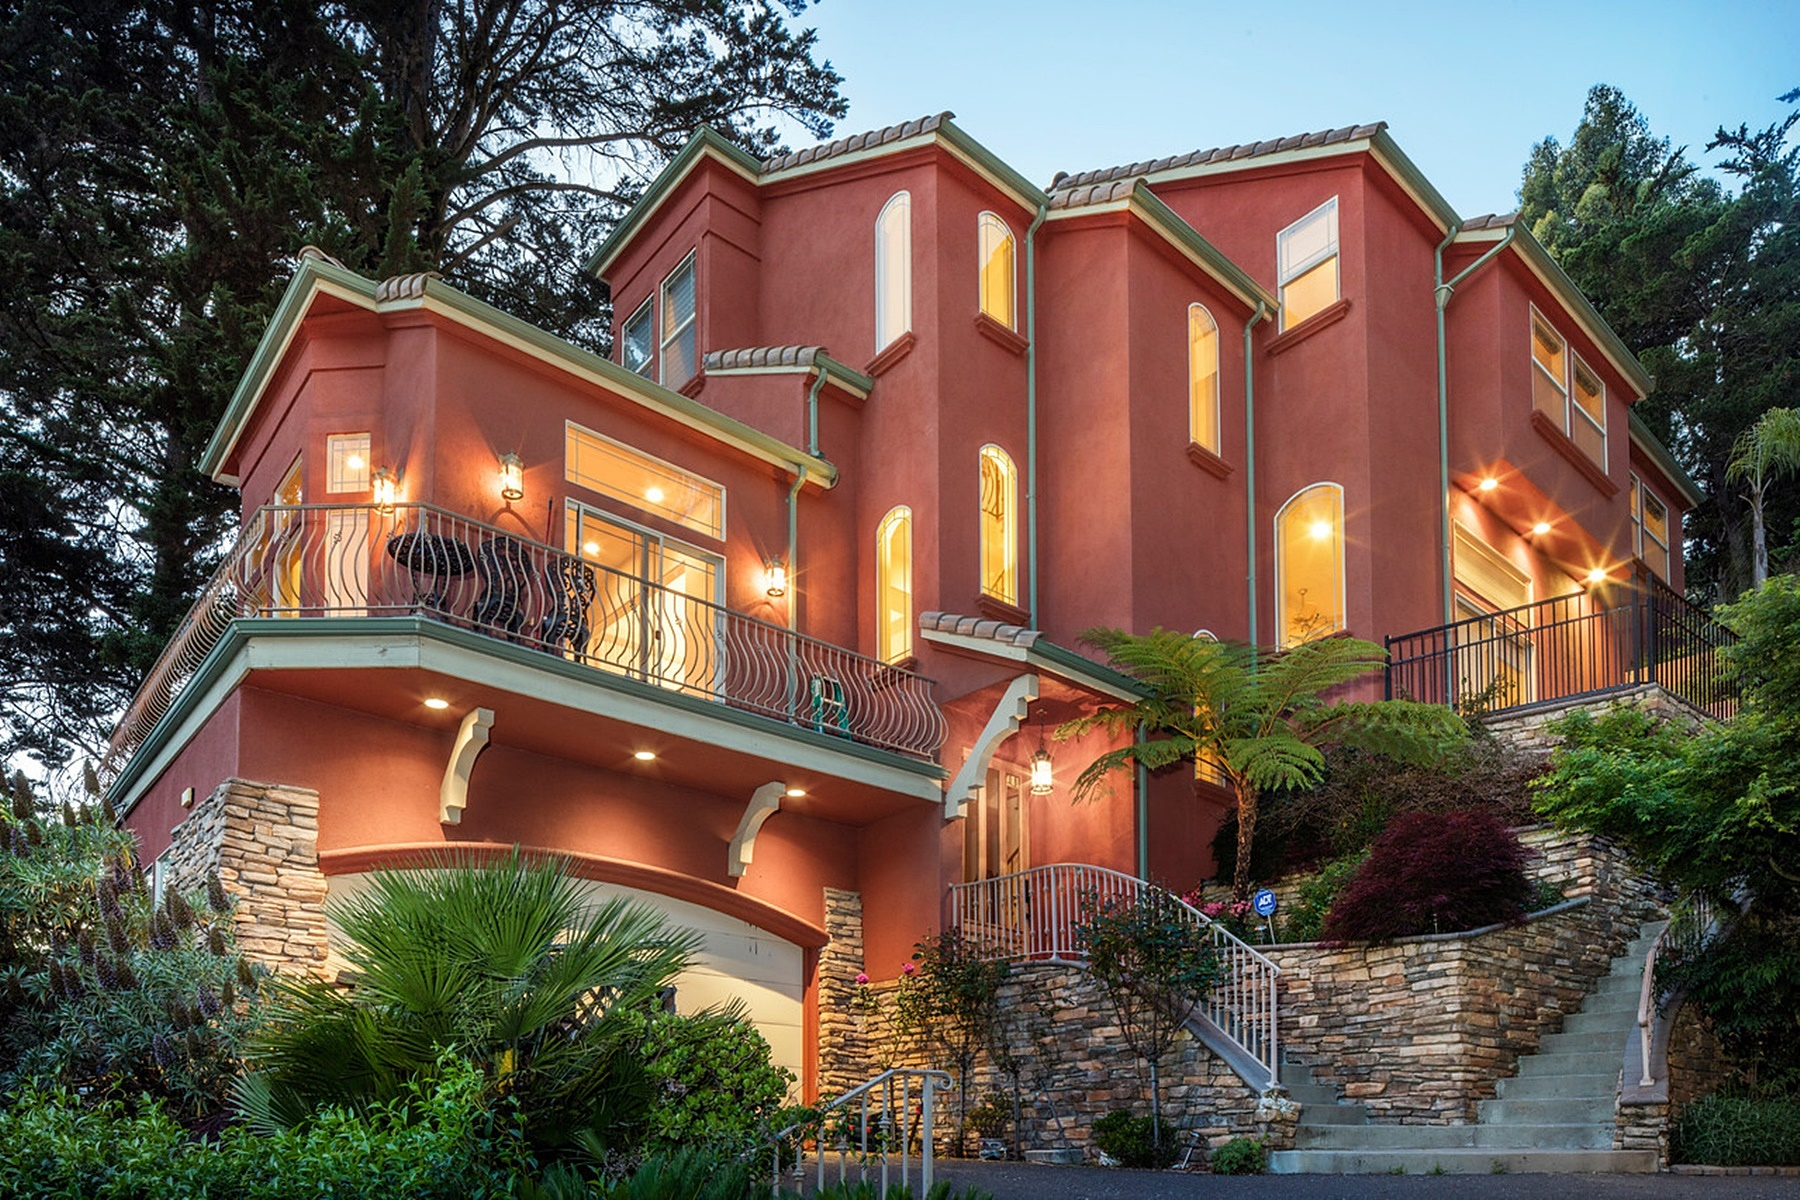 Single Family Home for Sale at Stunning Oakland Hills Home 2100 Arrowhead Drive Oakland, California 94611 United States